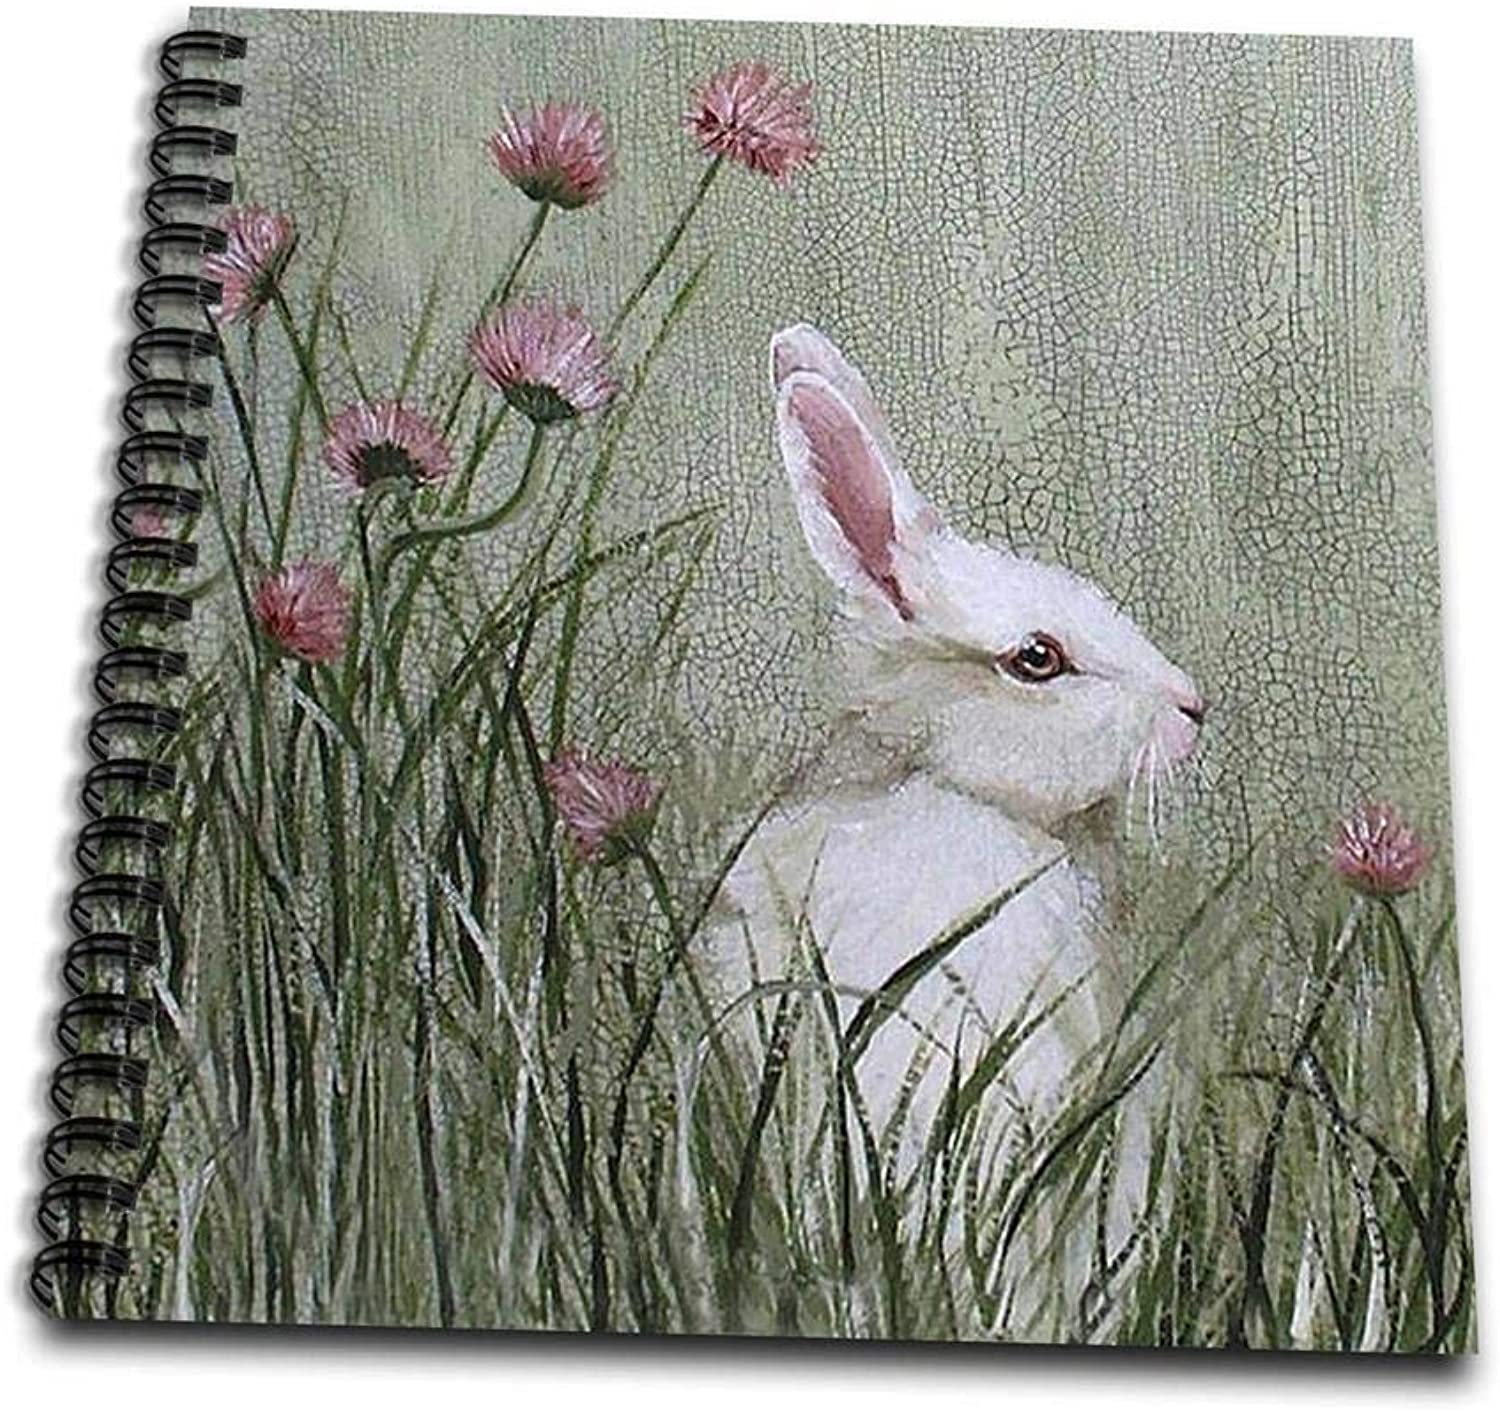 3dpink db_44349_1 Side View of Bunny Rabbit in Tall Grass with Pink Wildflowers Drawing Book, 8 by 8